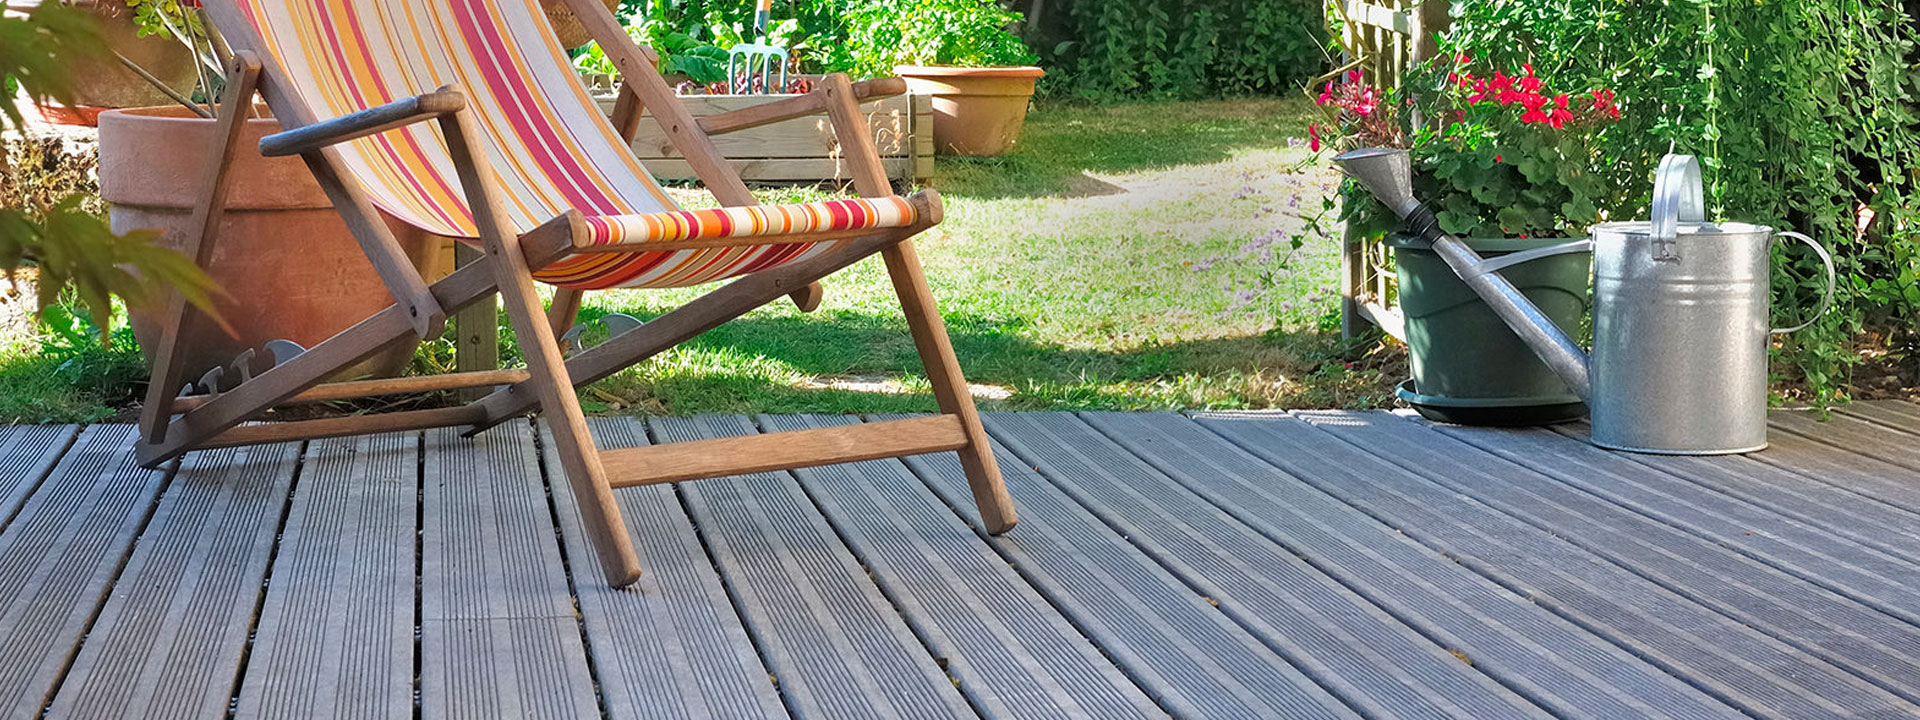 It's time to kickstart your decking project